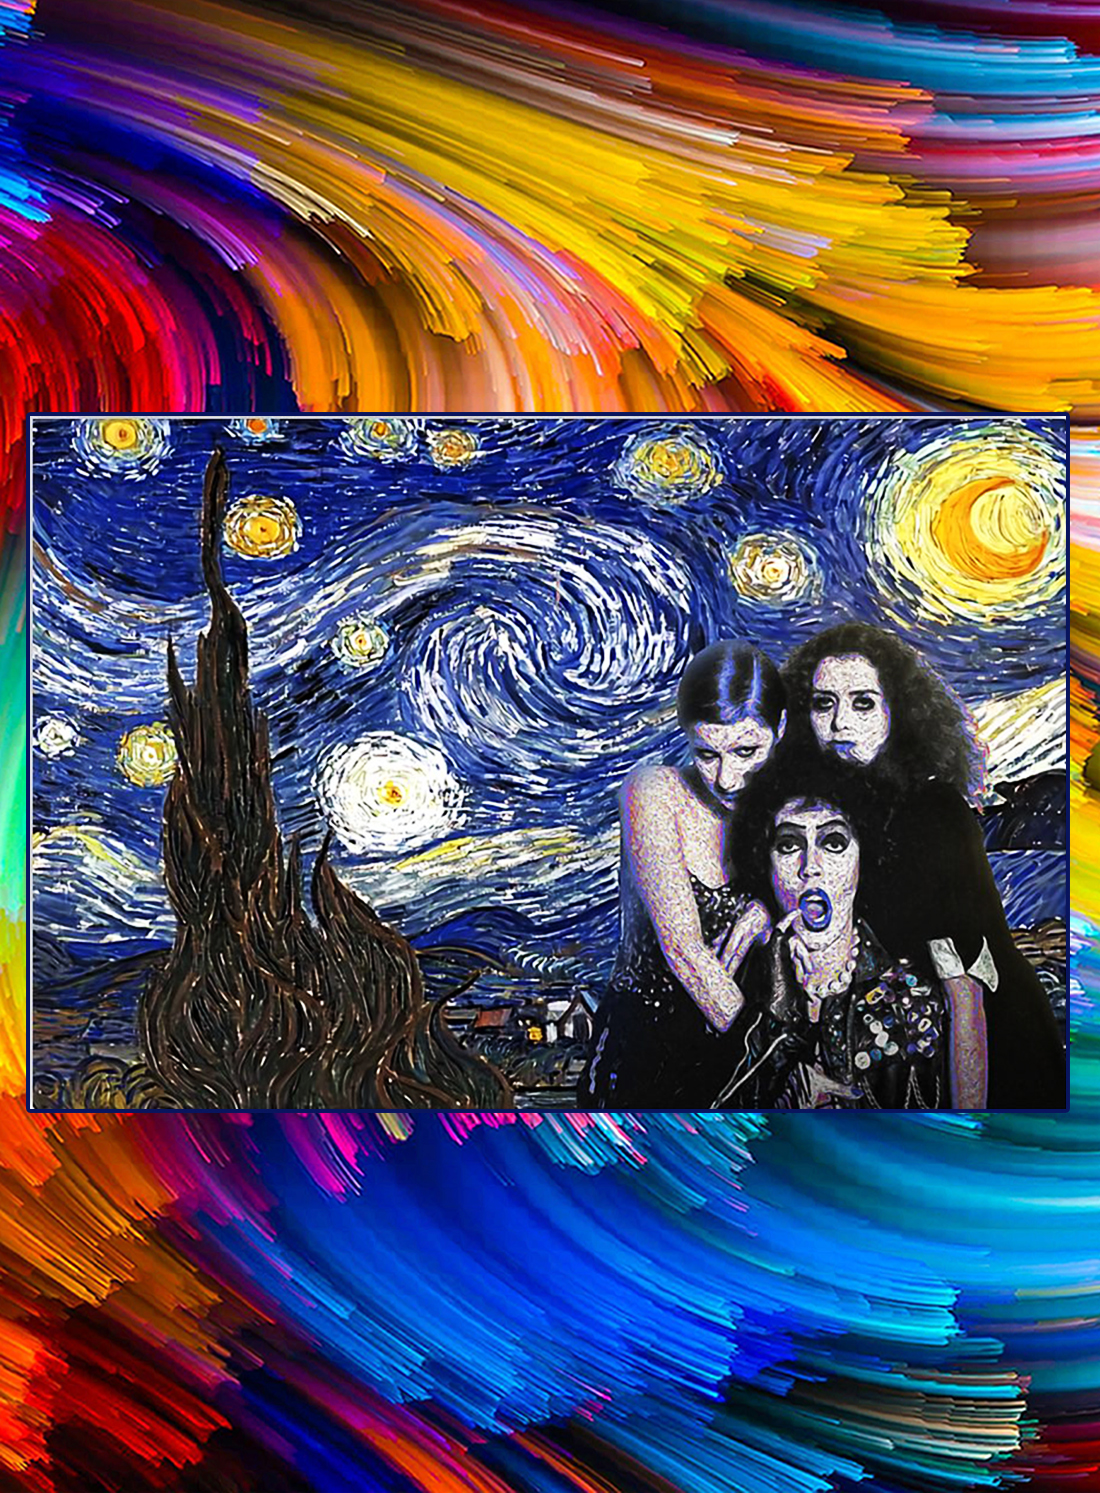 Rocky horror picture show starry night poster